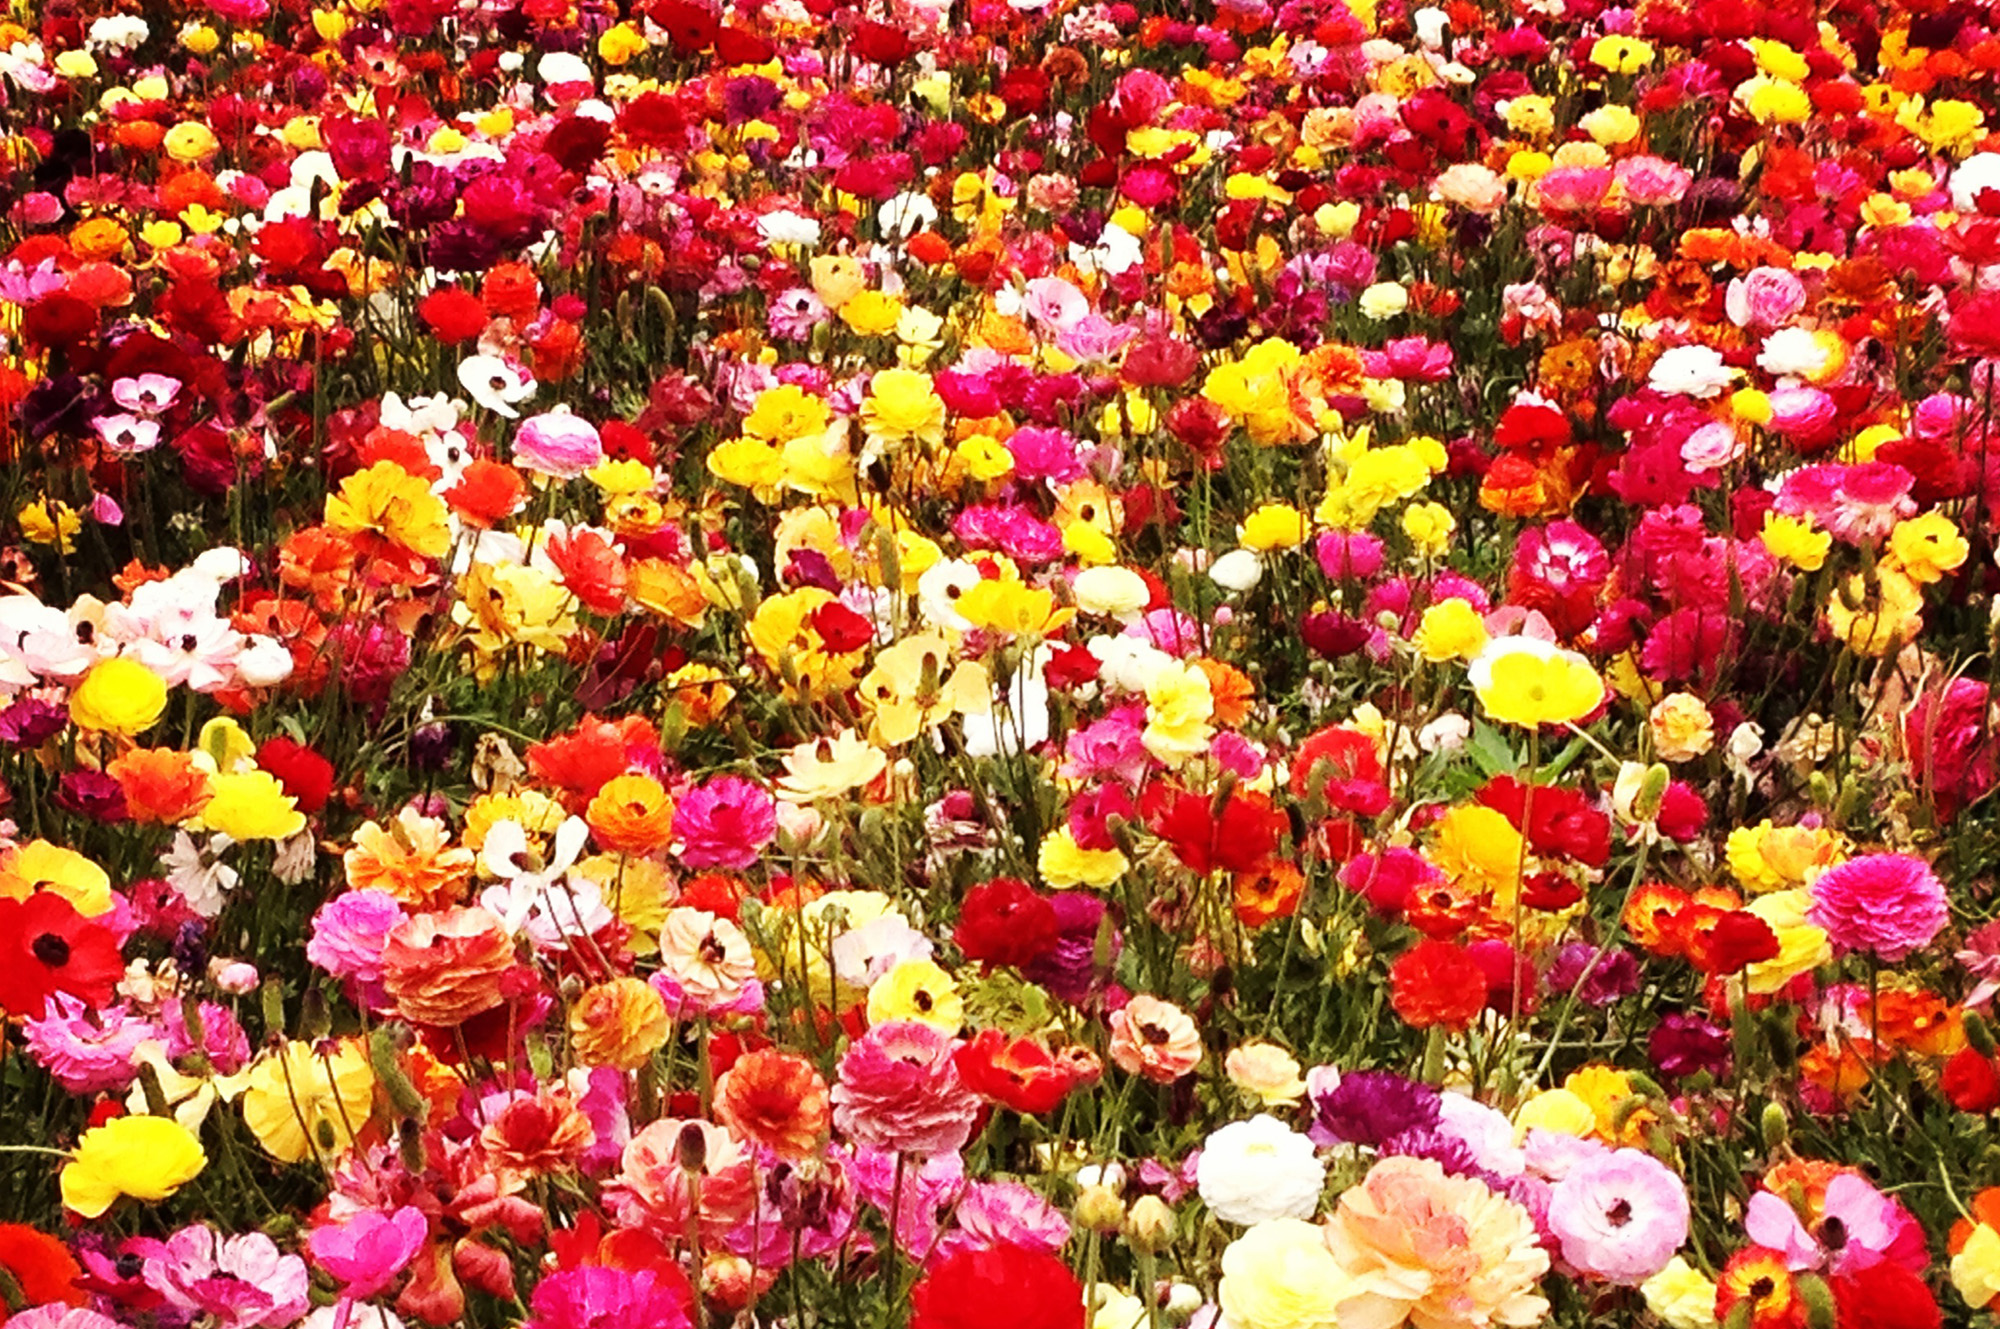 Flowers in a lot of colors and species.